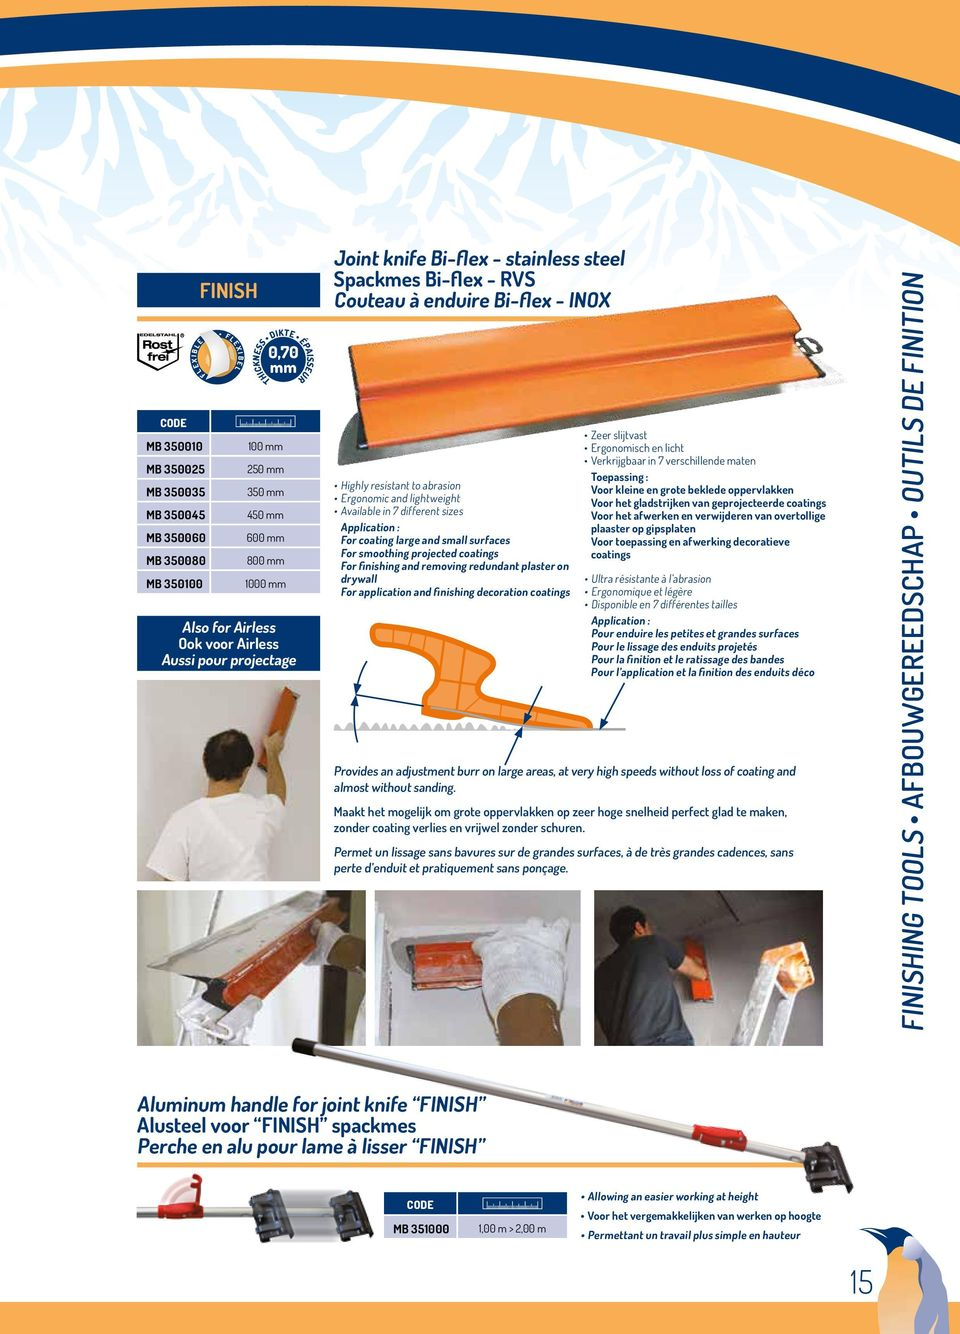 Available in 7 different sizes Application : For coating large and small surfaces For smoothing projected coatings For finishing and removing redundant plaster on drywall For application and